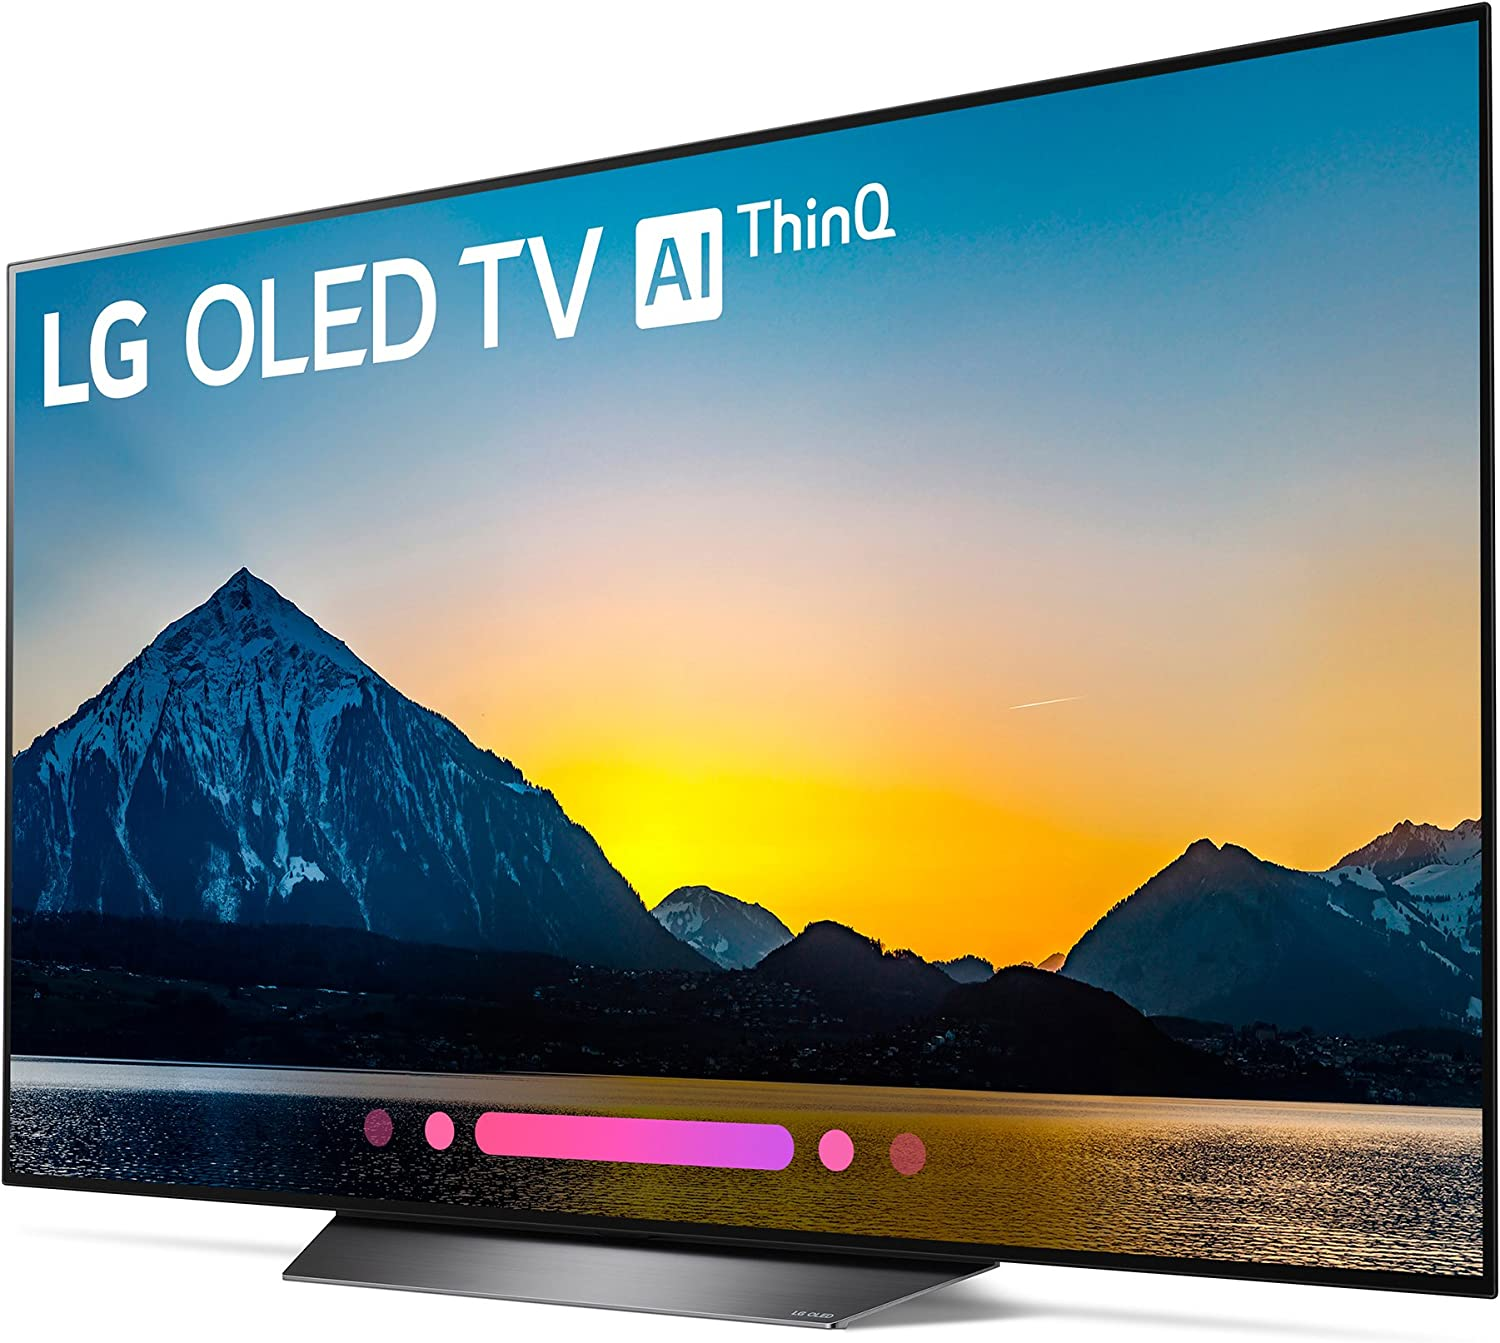 Amazon.com: LG Electronics OLED55B8PUA 55-Inch 4K Ultra HD Smart ...